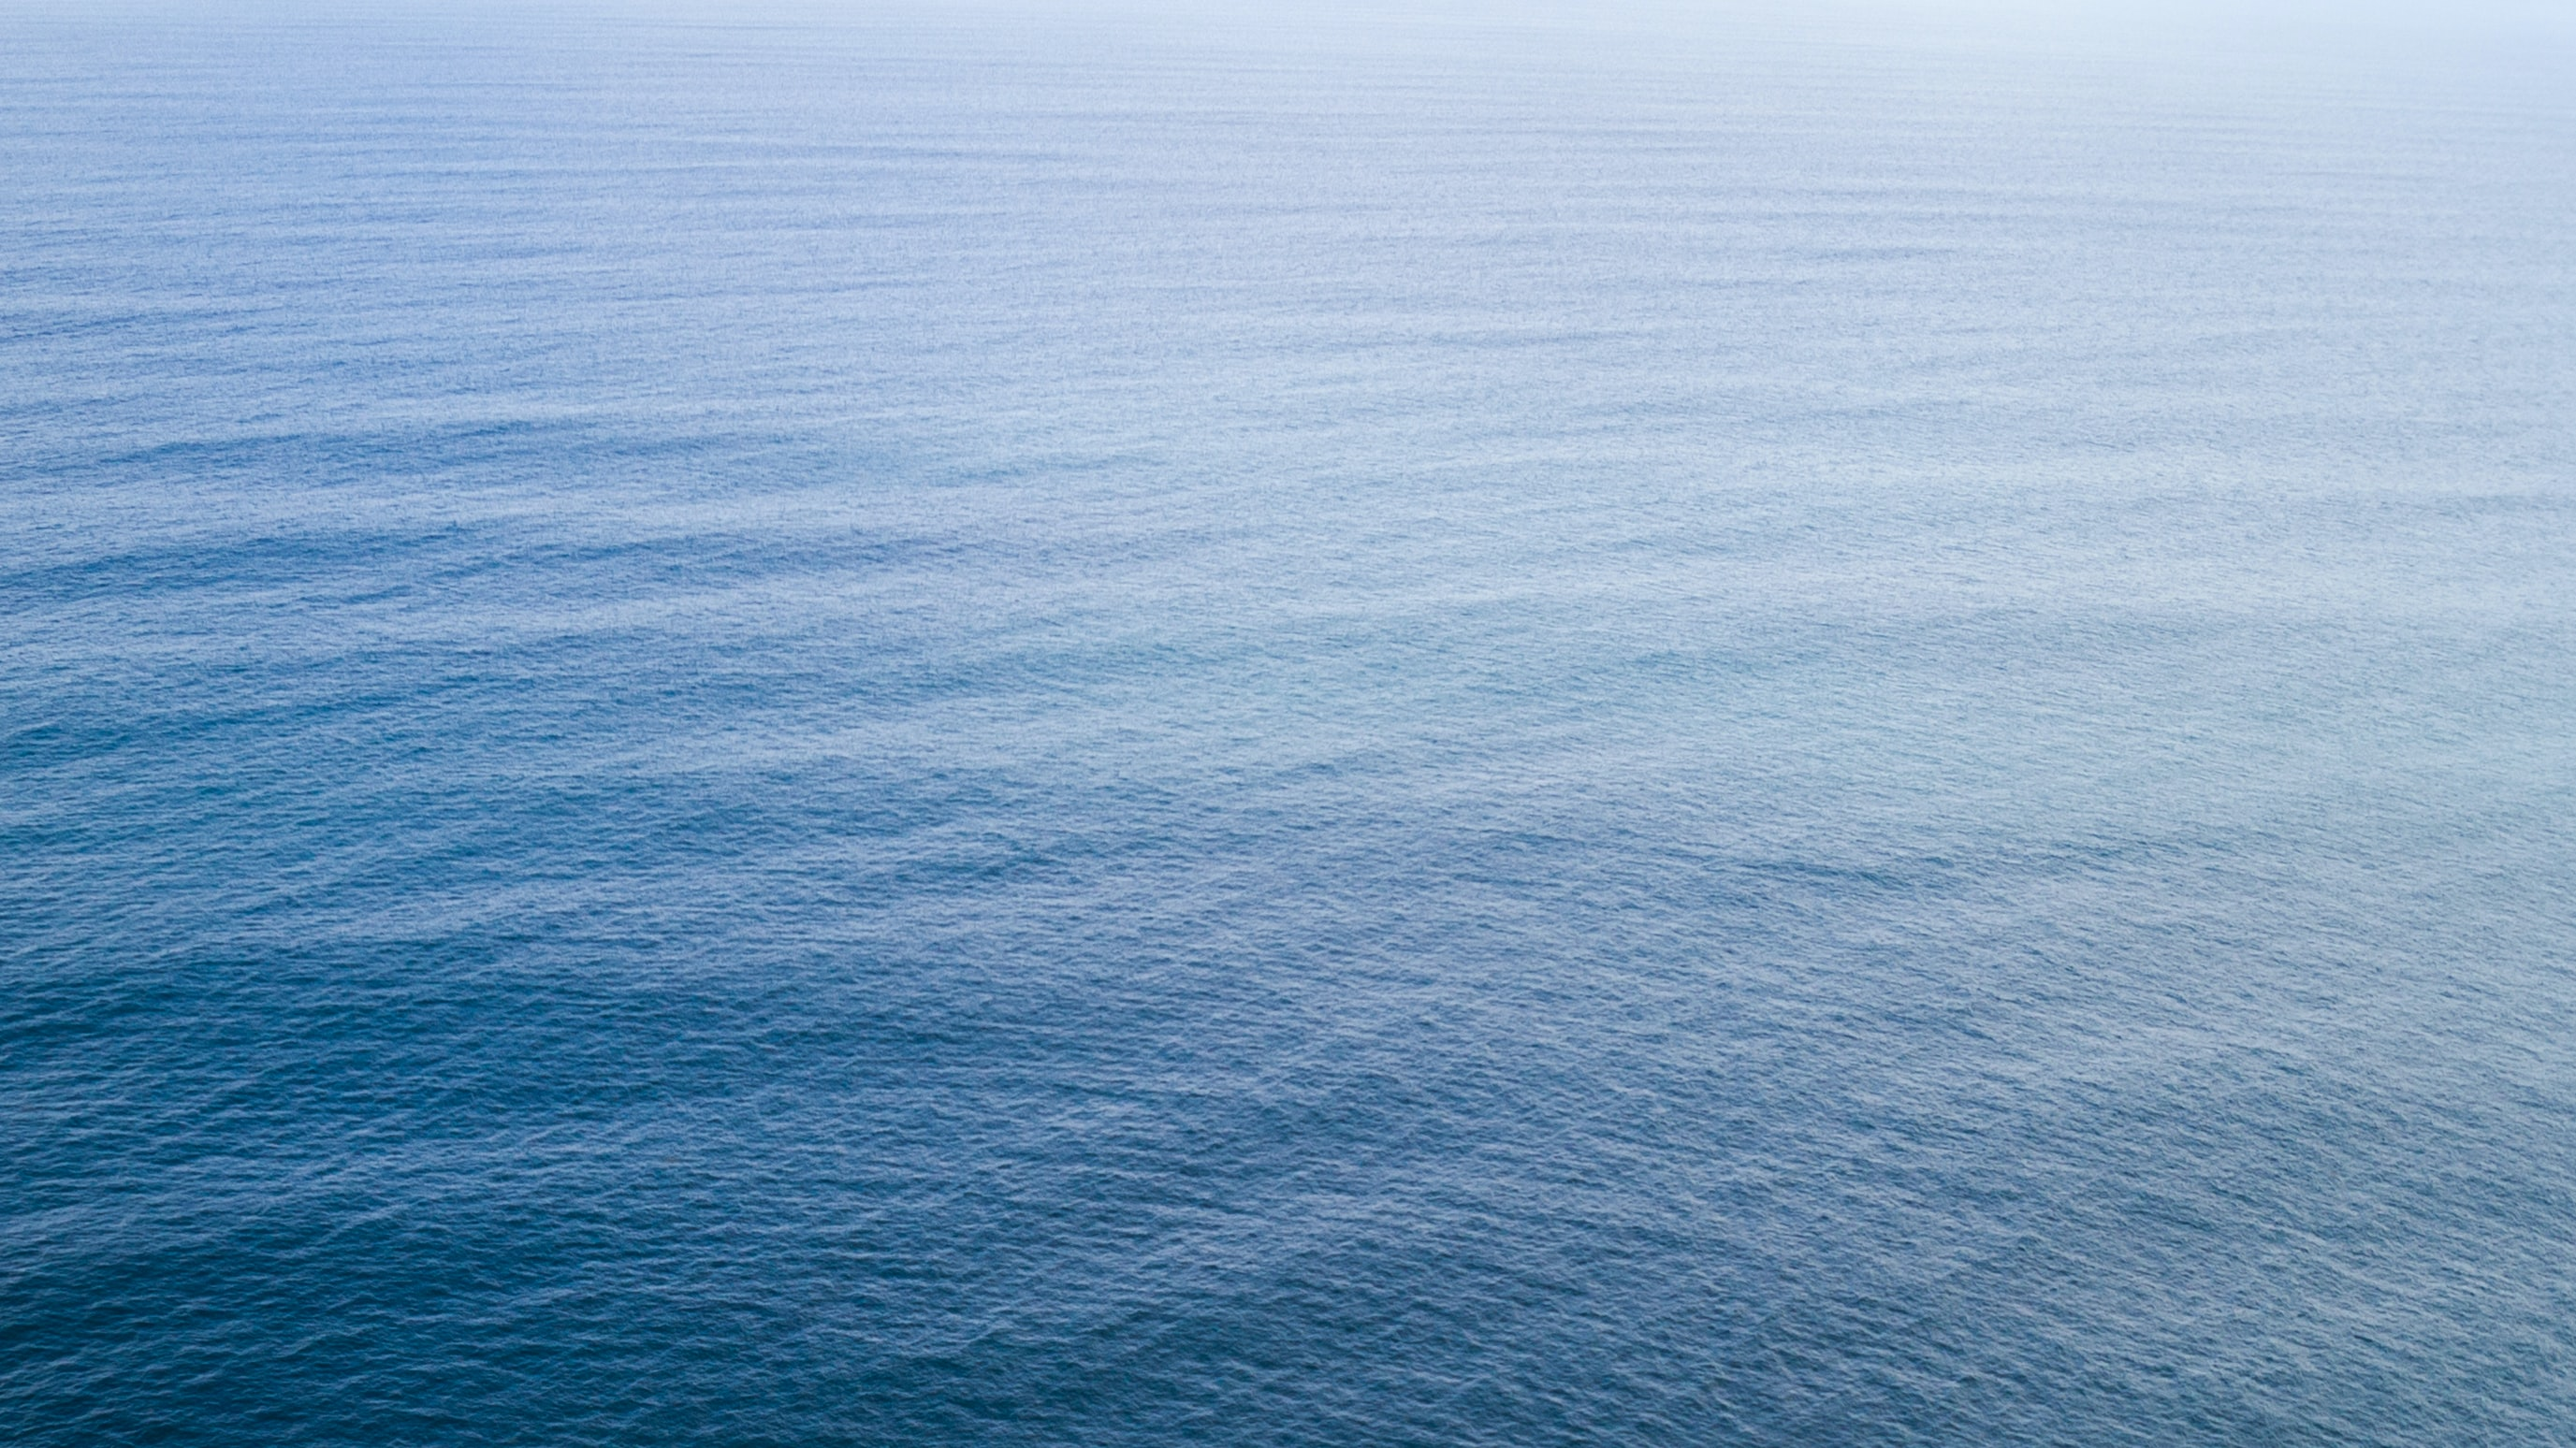 landscape photo of body of water